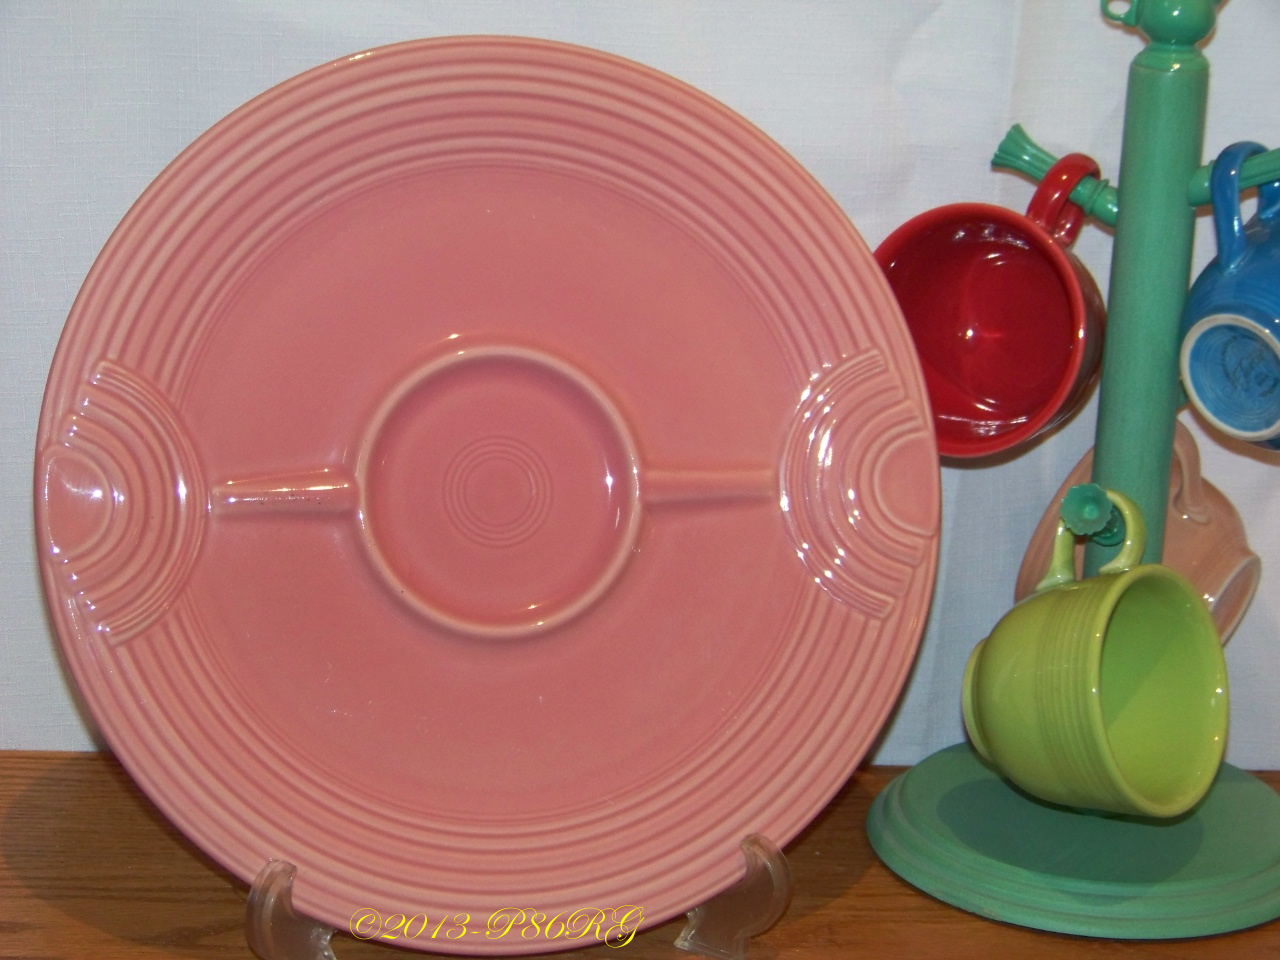 Post 86 Reference Guidefiesta Discontinued Item The Current Ideas Trend Dinnerware Sets